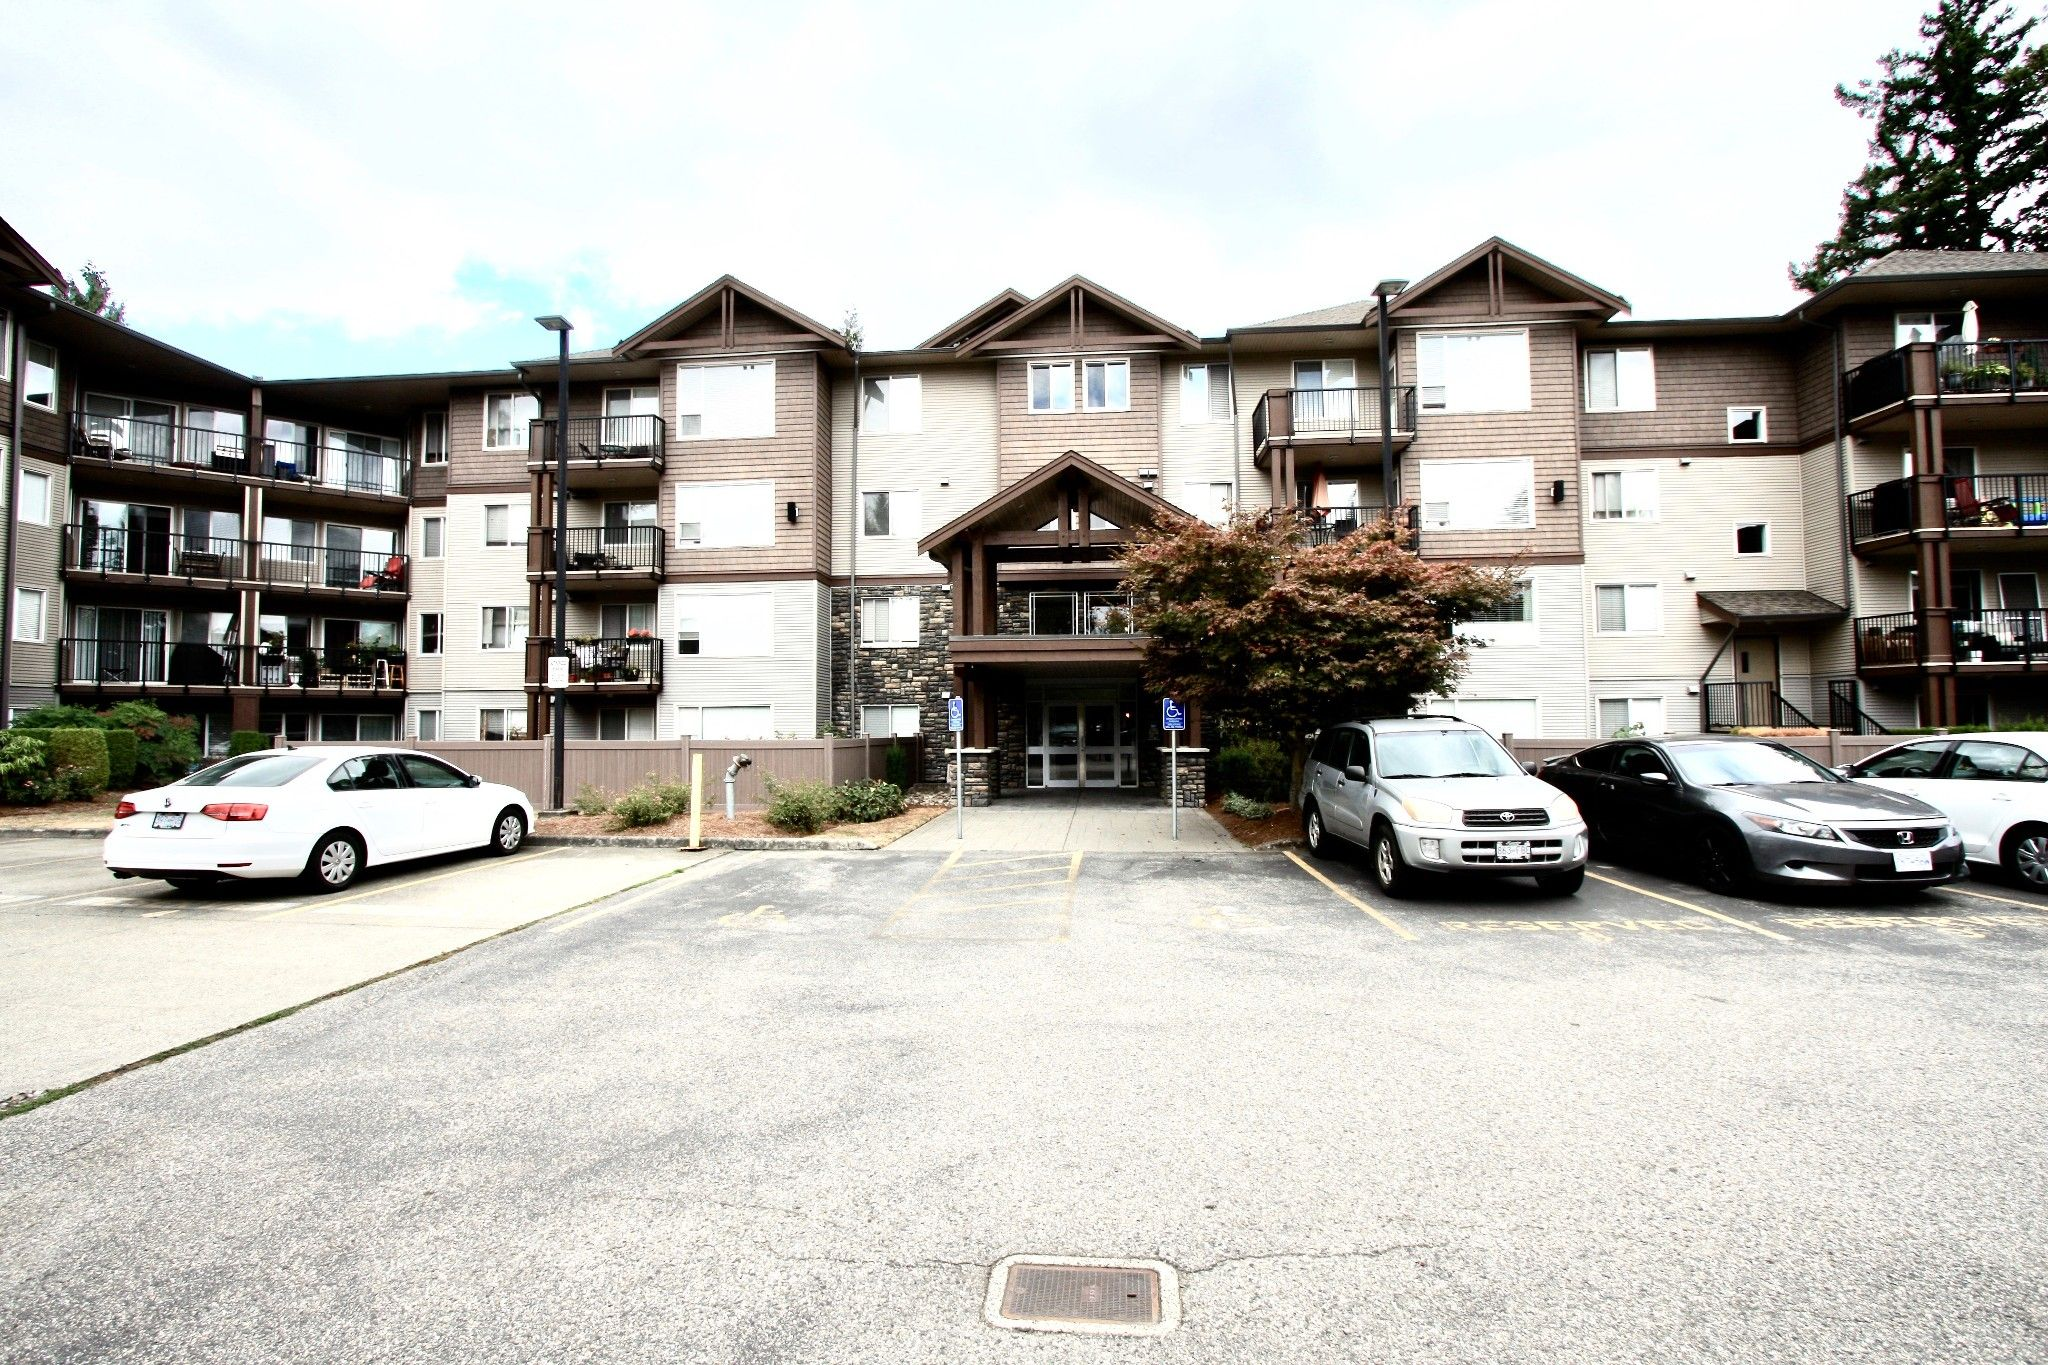 Main Photo: 417 2581 Langdon Street in Abbotsford: Abbotsford West Condo for sale : MLS®# 417 2581 Langdon St $420,000